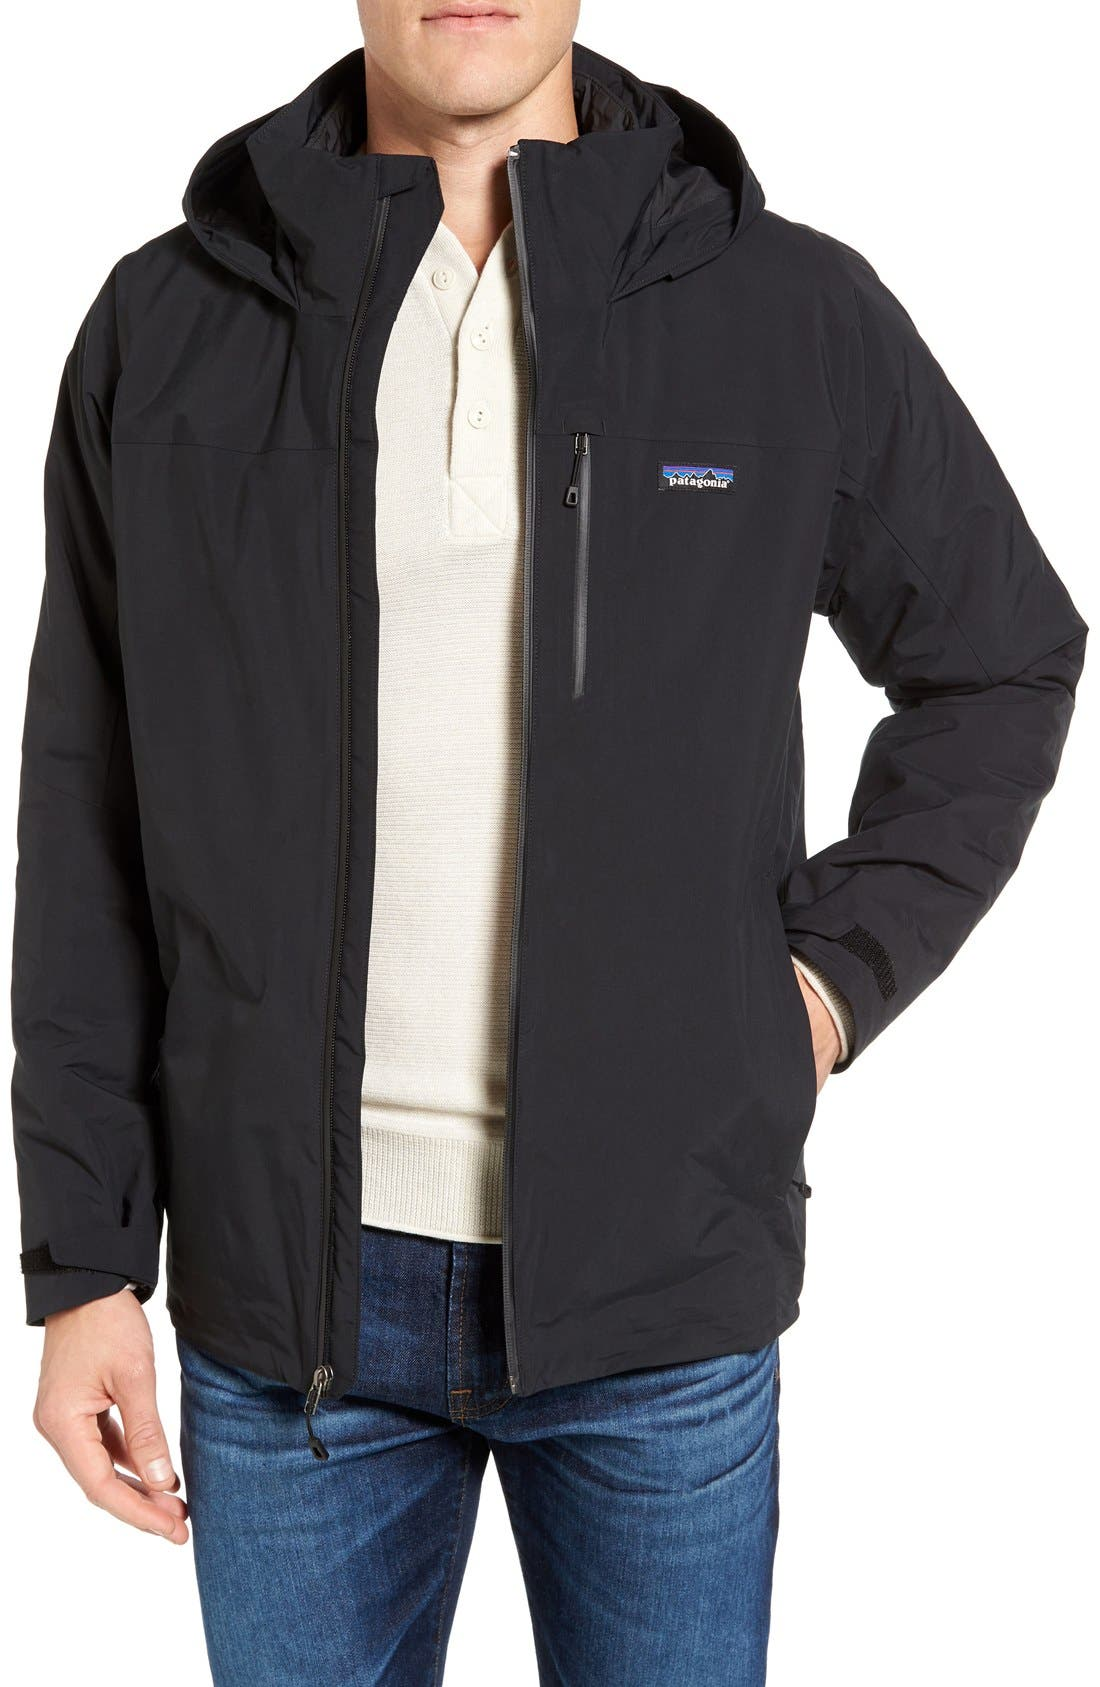 Windsweep 3-in-1 Jacket,                             Main thumbnail 1, color,                             Black